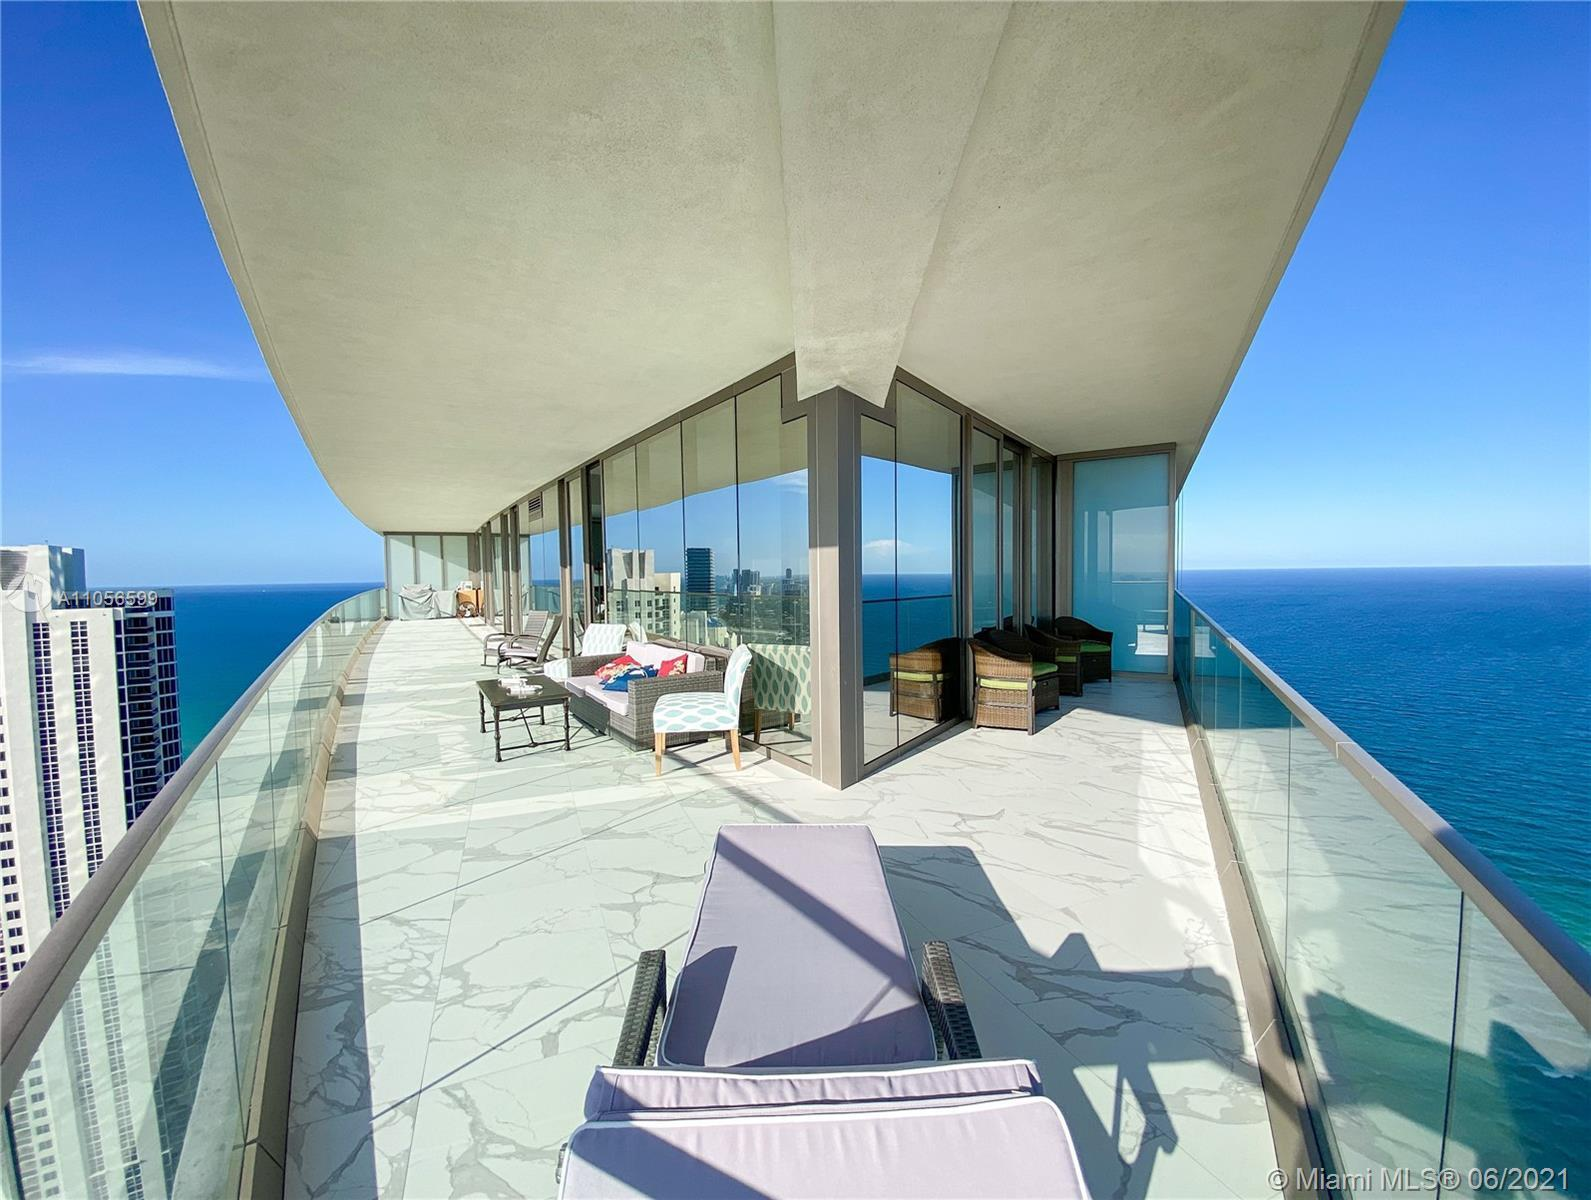 The new Residences by Armani Casa in Sunny Isles Beach's the most prestigious beachfront building. T